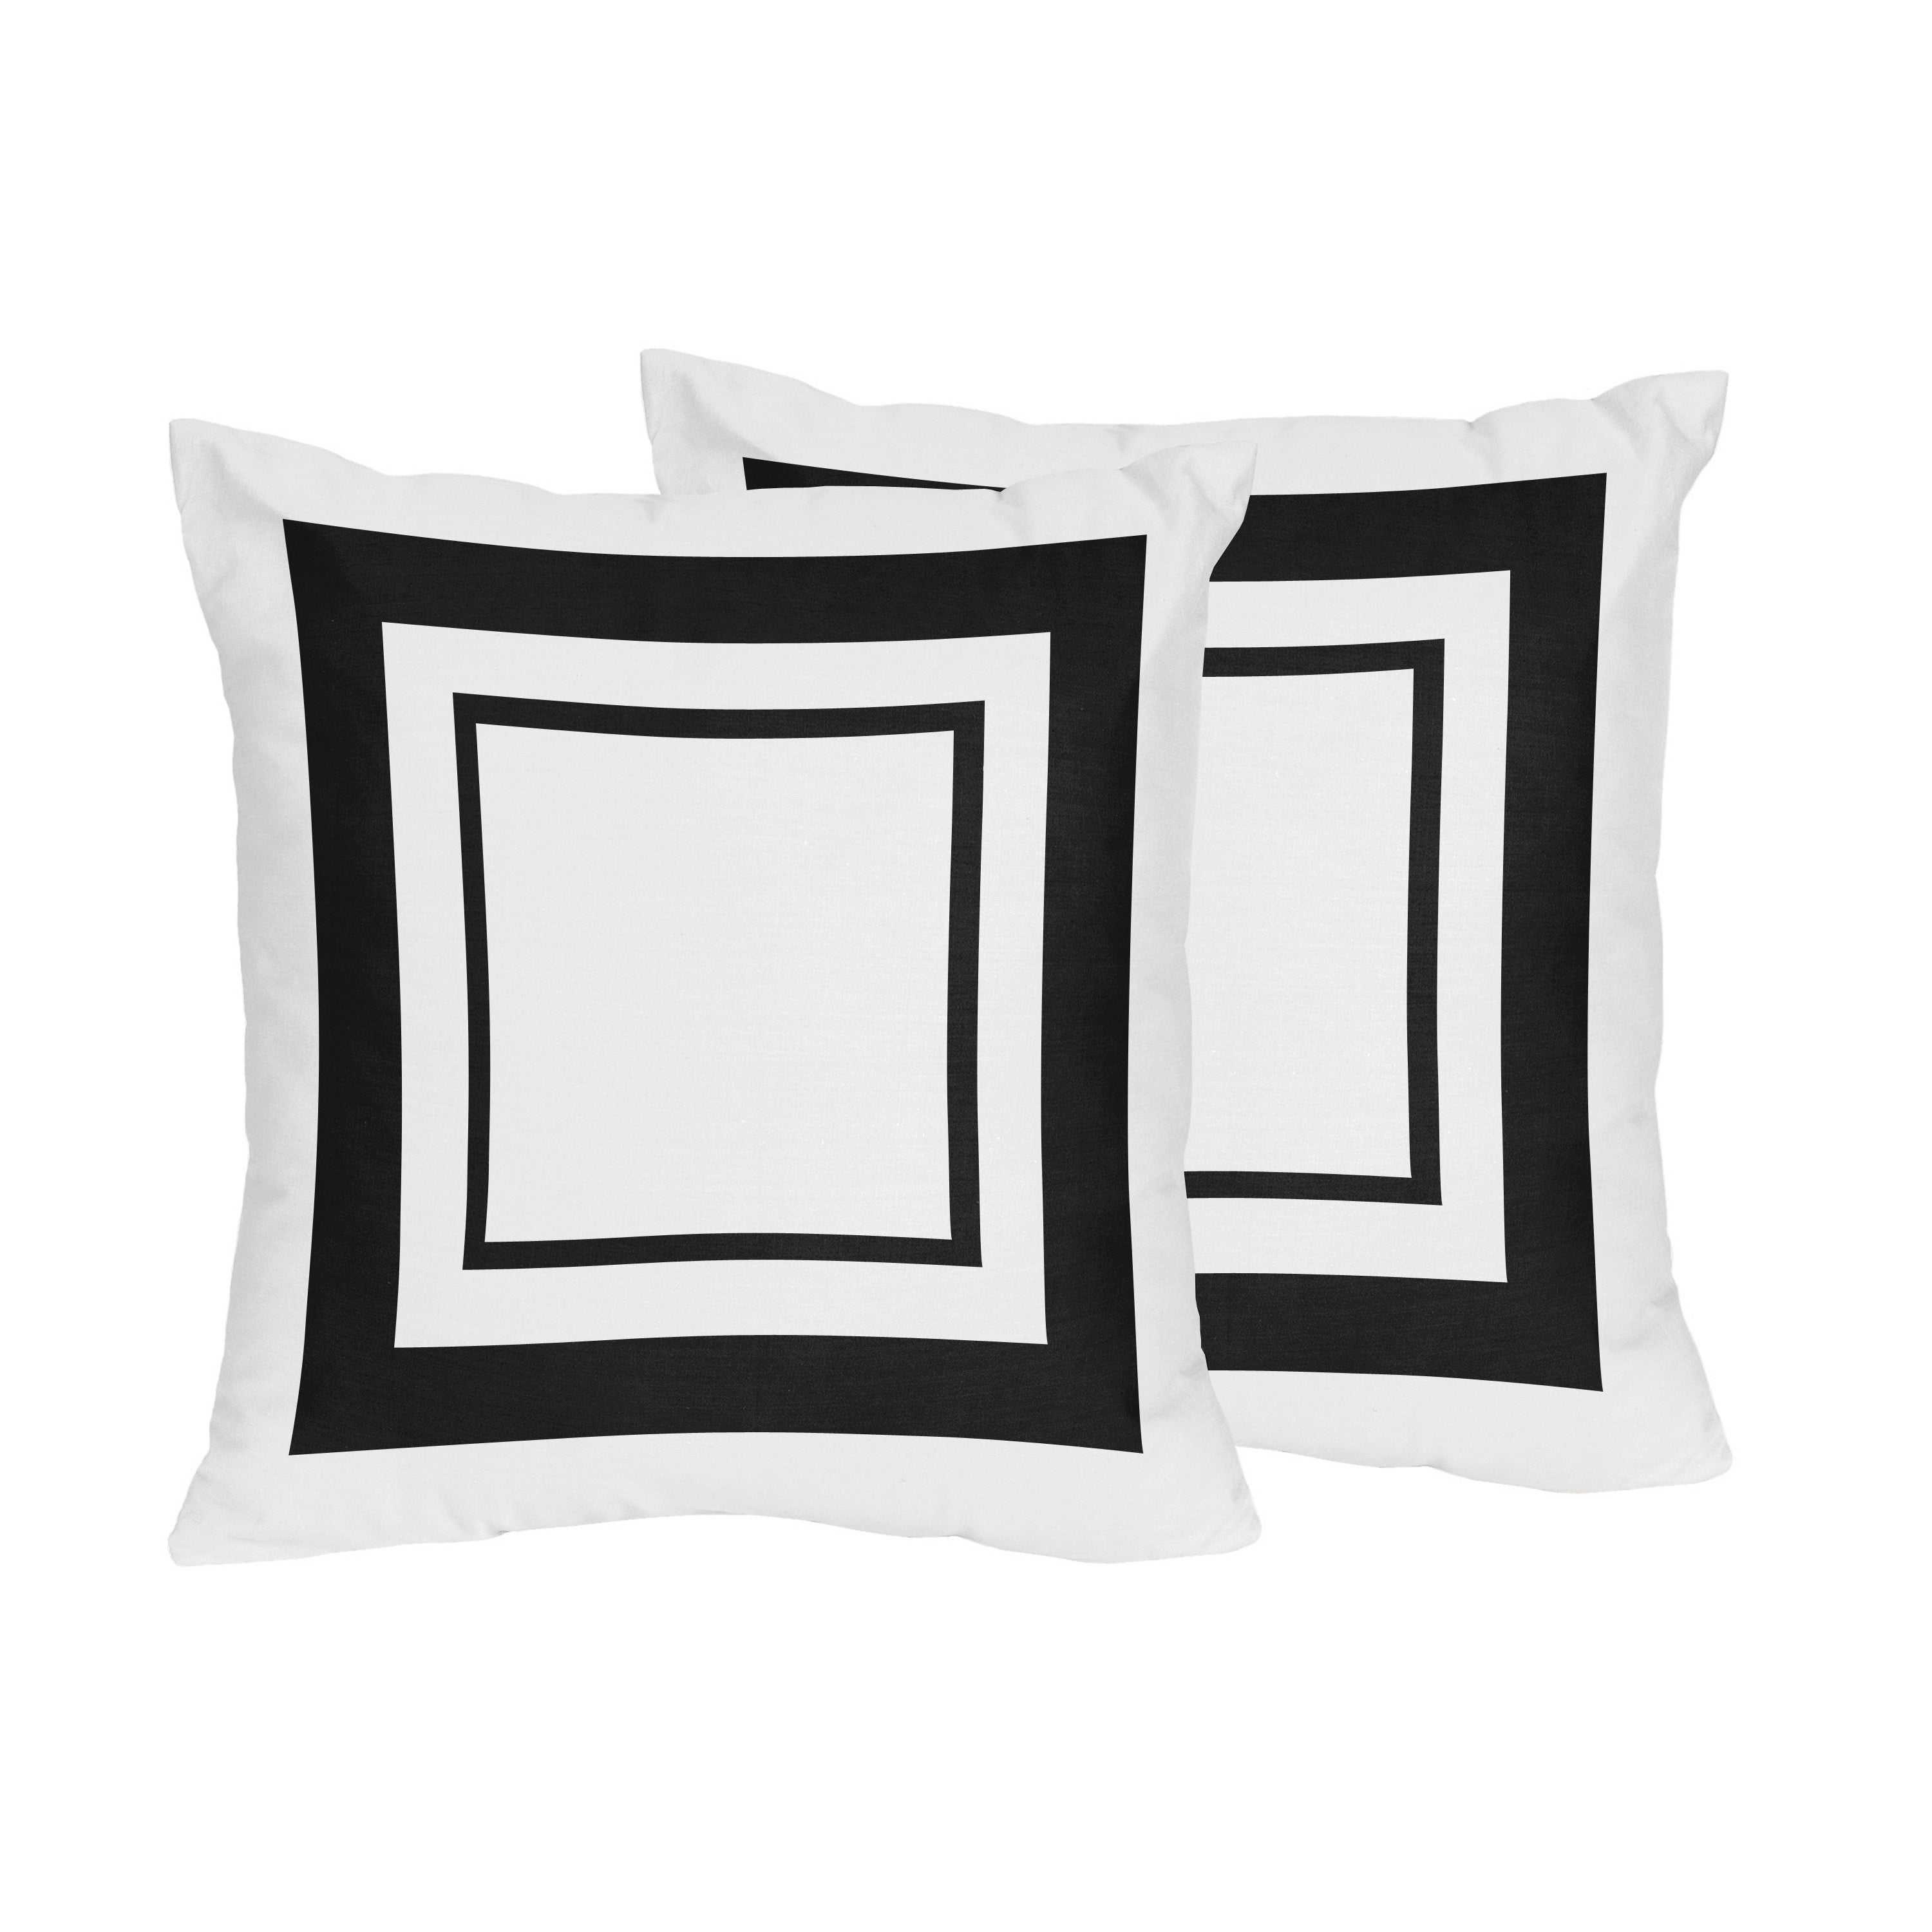 Sweet Jojo Designs White And Black Hotel Decorative Accent Throw Pillow Set Of 2